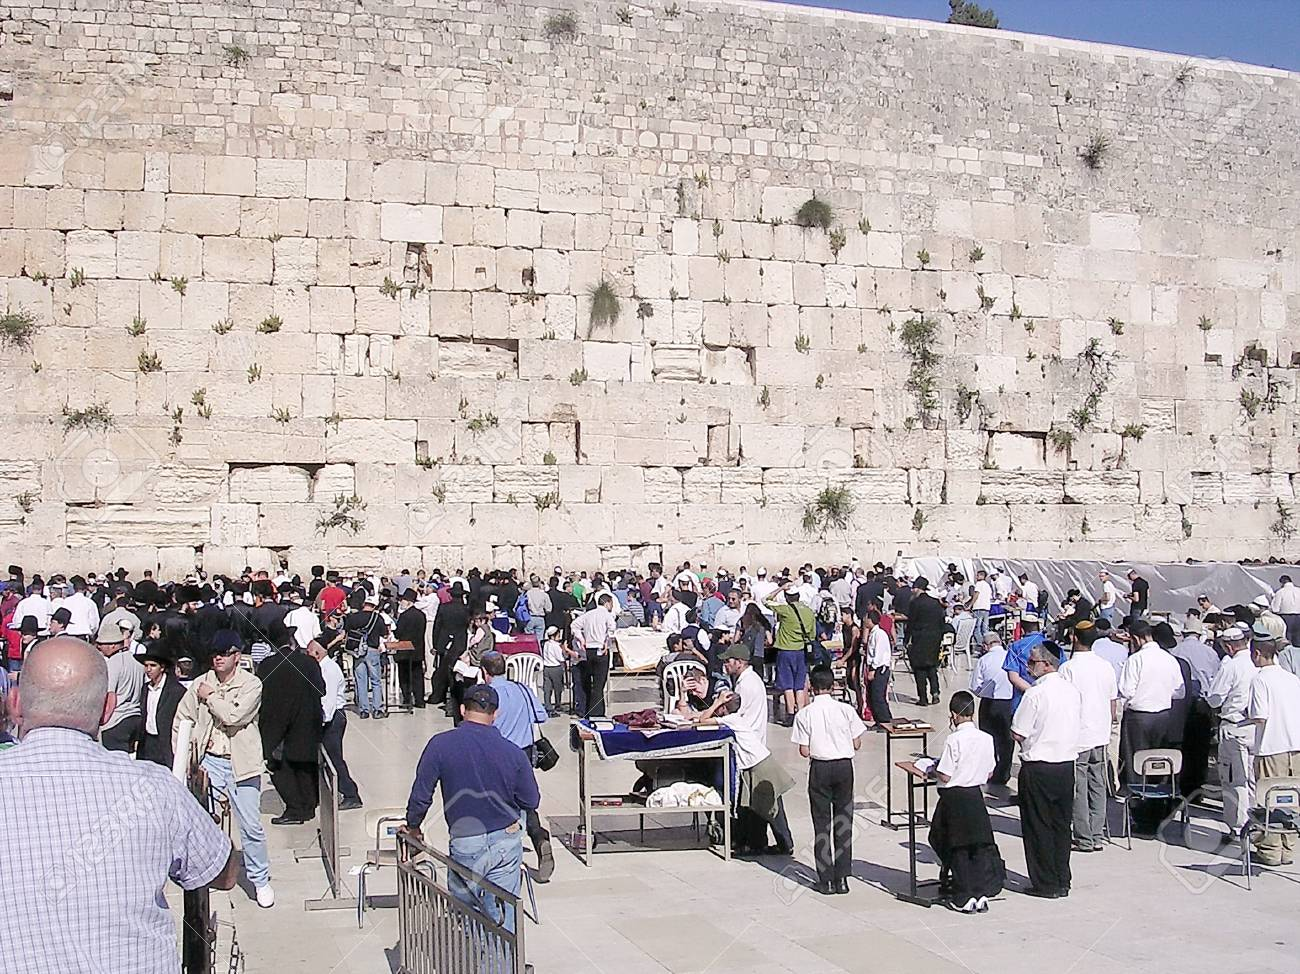 Offer prayers at the Wailing Wall in Jerusalem, Israel